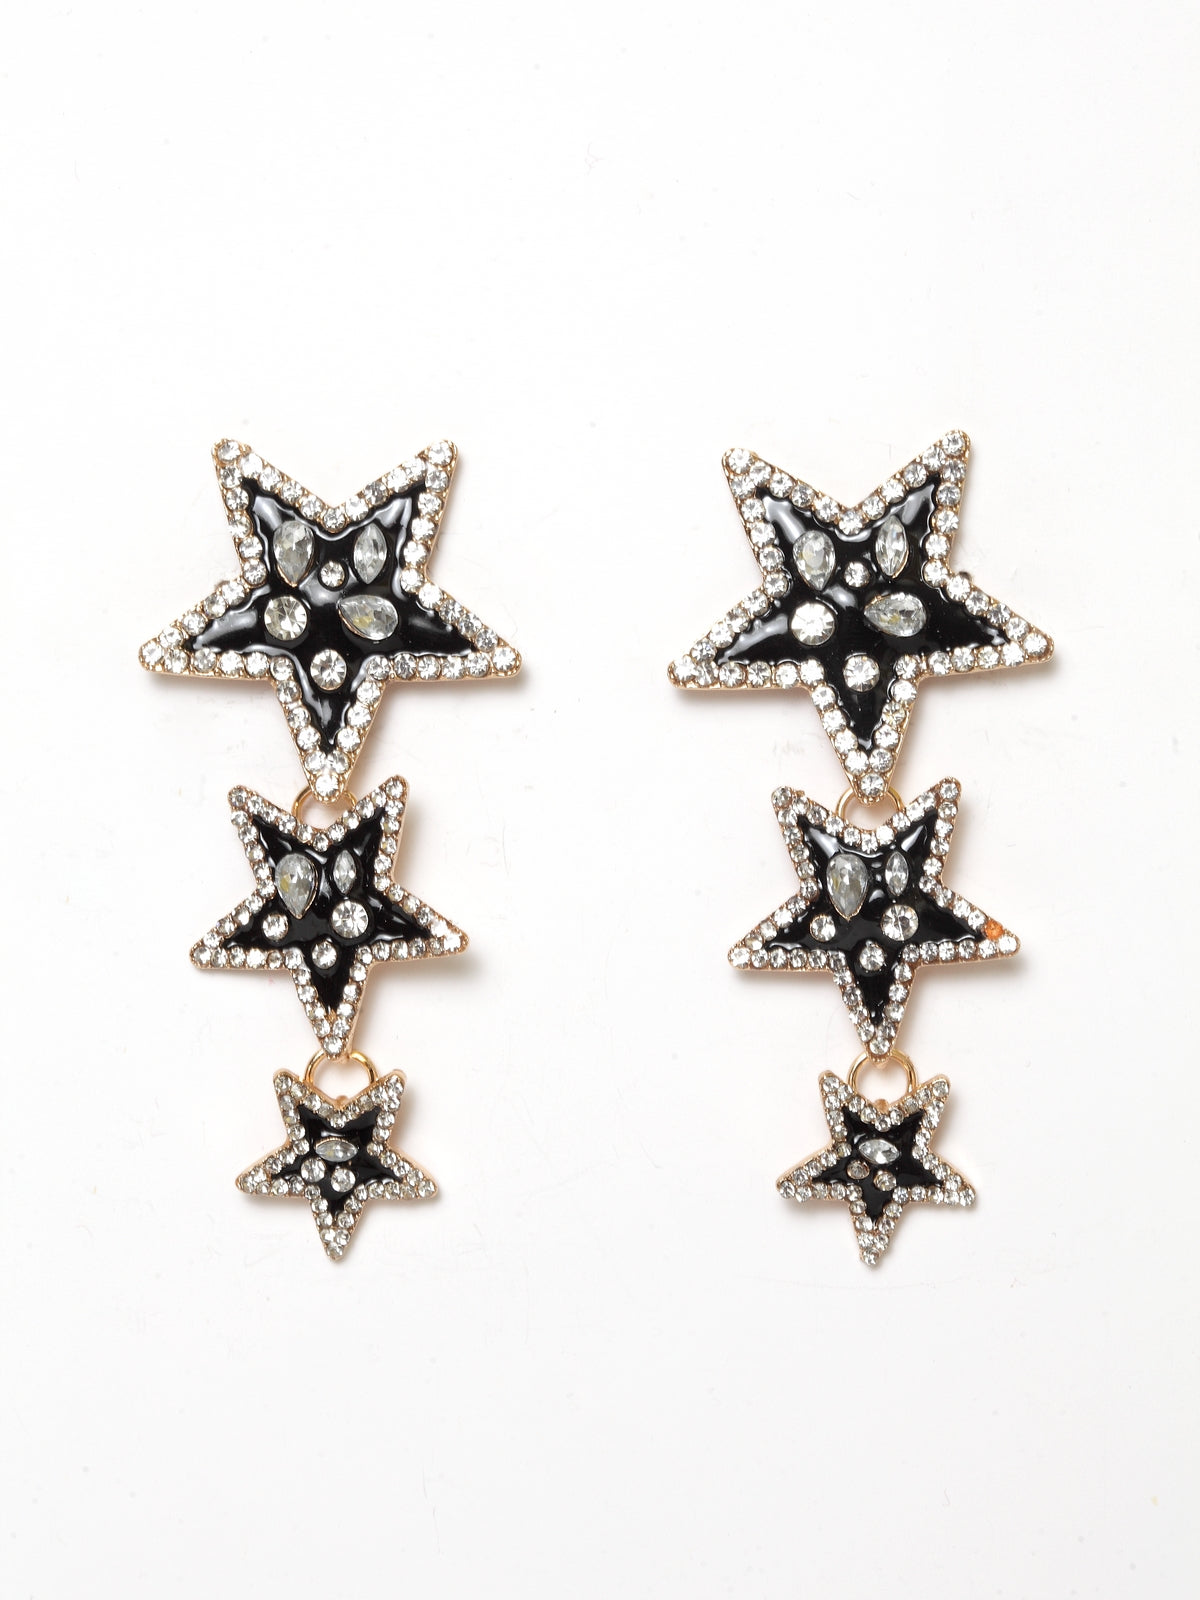 Avant-Garde Paris Statement Black Star Crystal Dangle Earrings